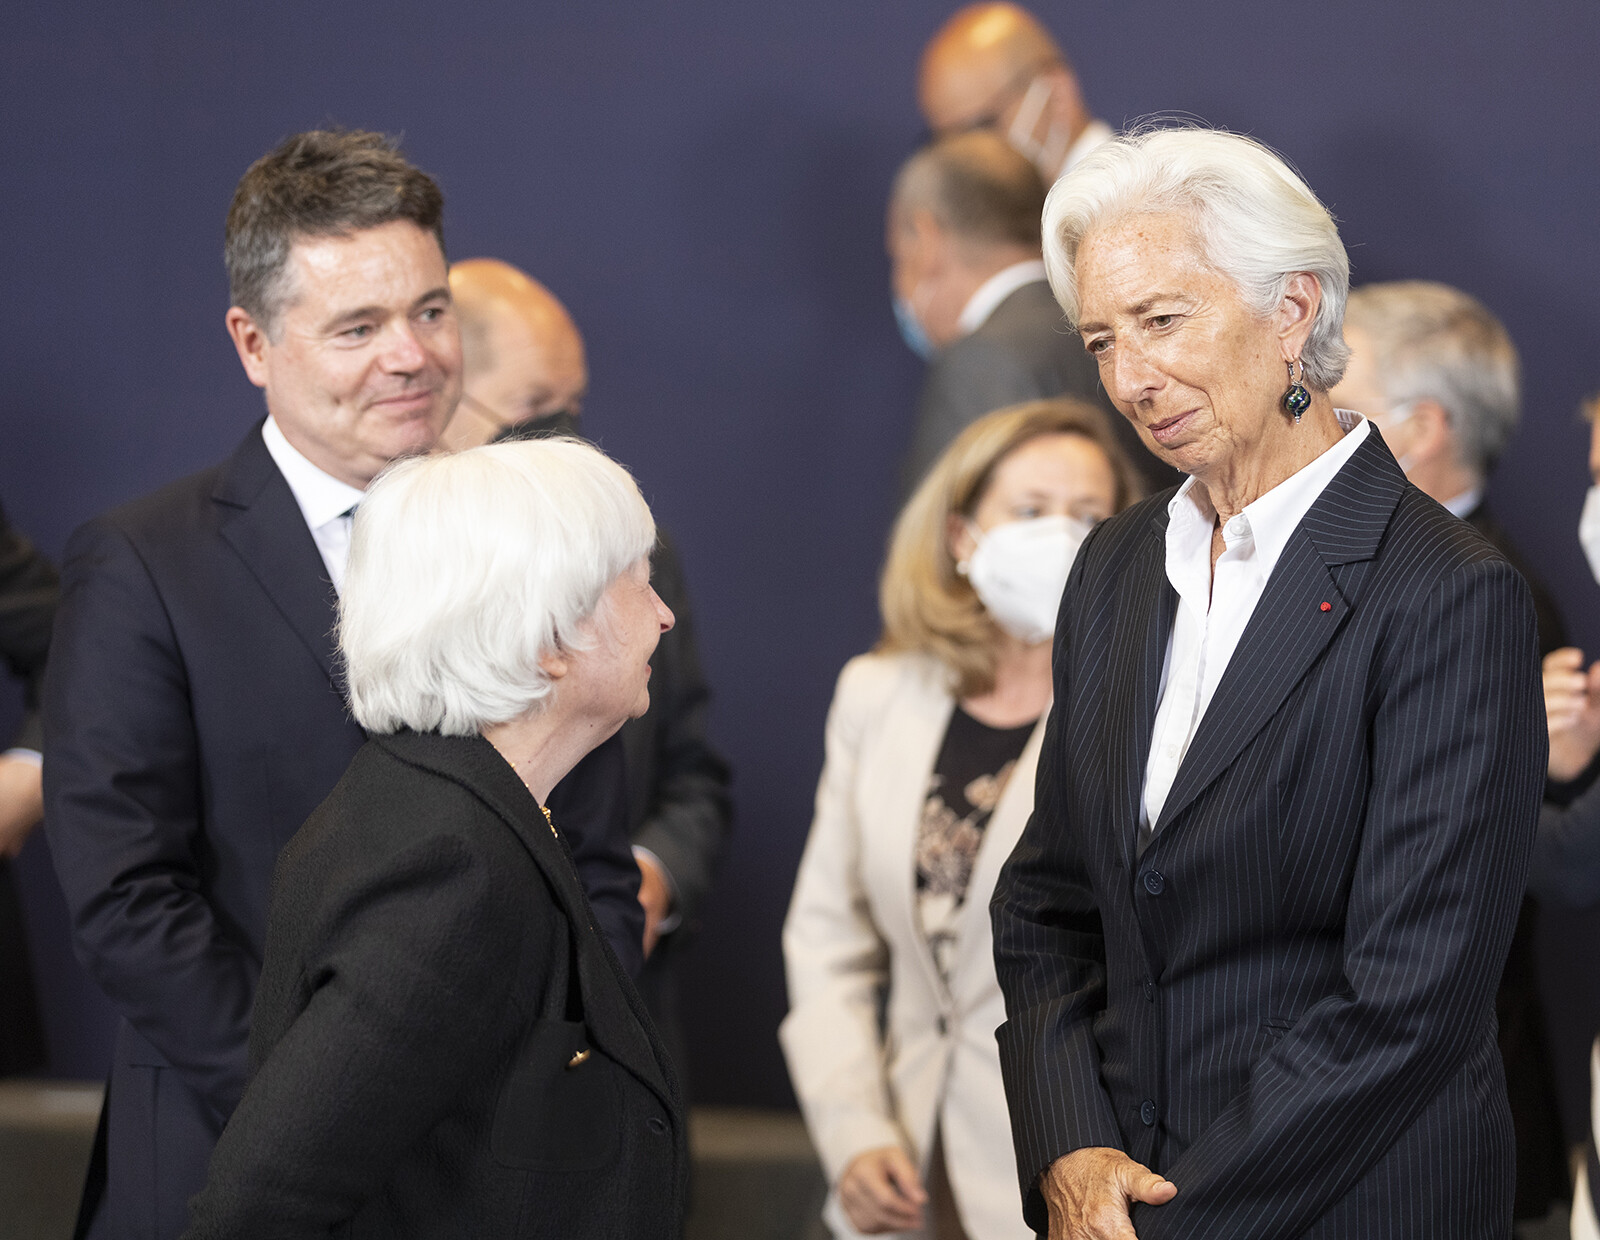 Thierry Monasse/Getty ImagesPresident of the European Central Bank Christine Lagarde will host a press conference on July 22.